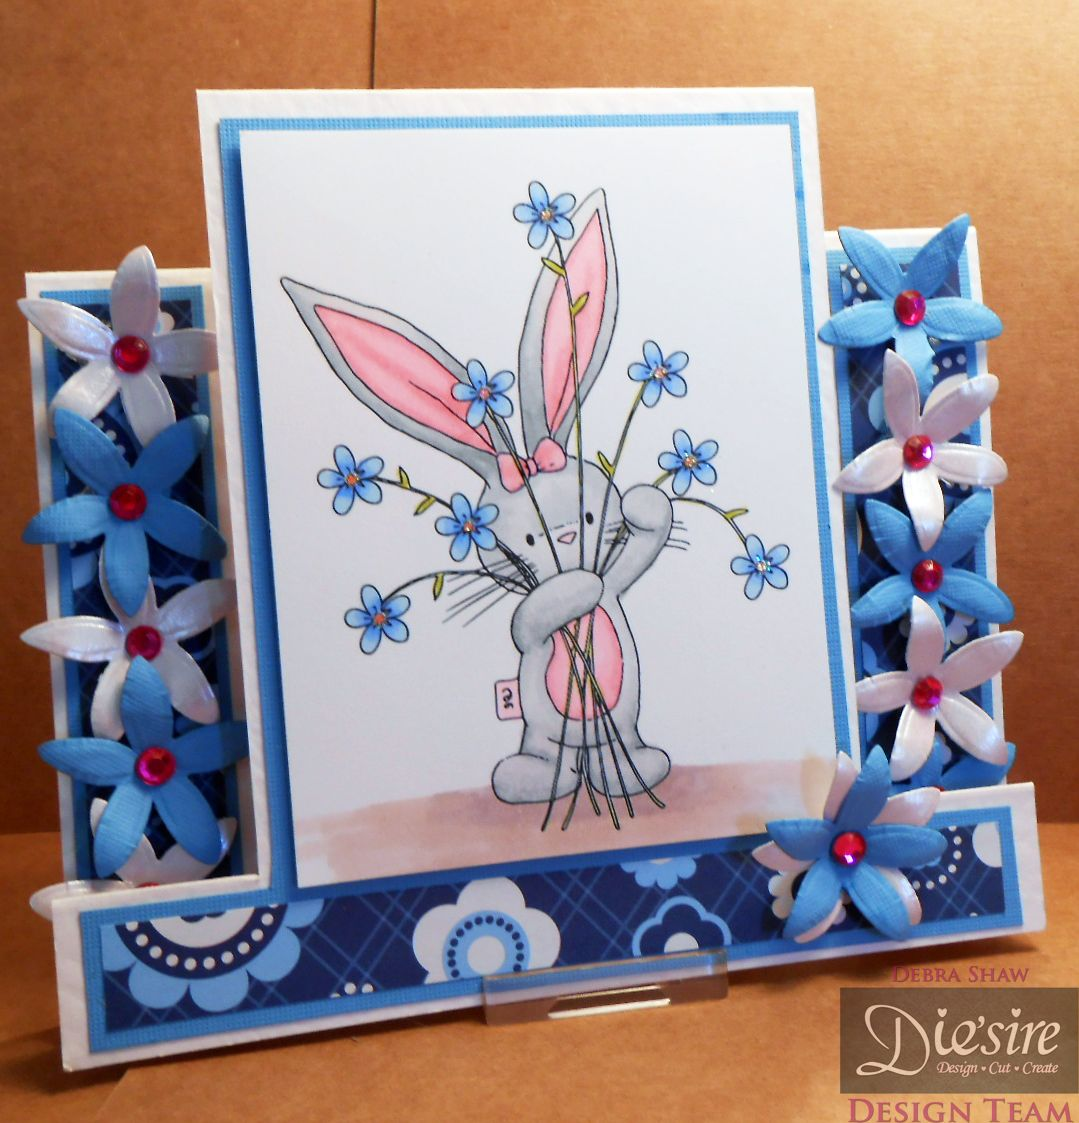 Bunny Step - Die'sire Forget Me Not, Bebunni Stamp colorued with Spectrum Noir pens, Centura Pearl,  Collall All Purpose, 3D Gel and Tacky glue - Glitter, paper and gems @spectrumnoir #spectrumnoir #crafterscompanion